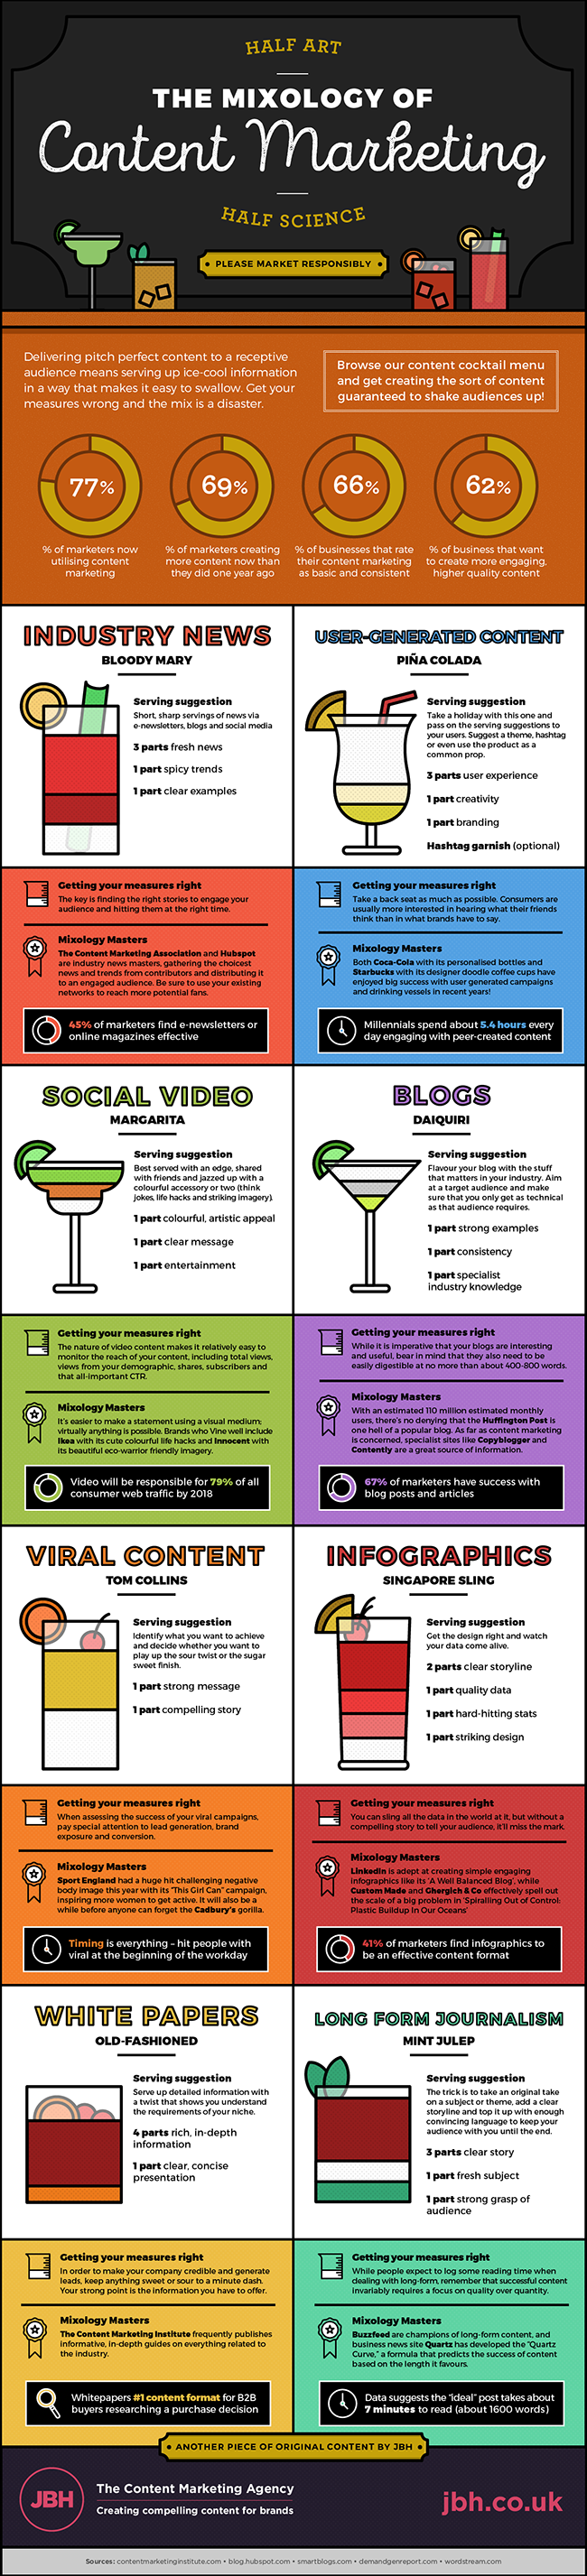 mixology-infographic-blog-image